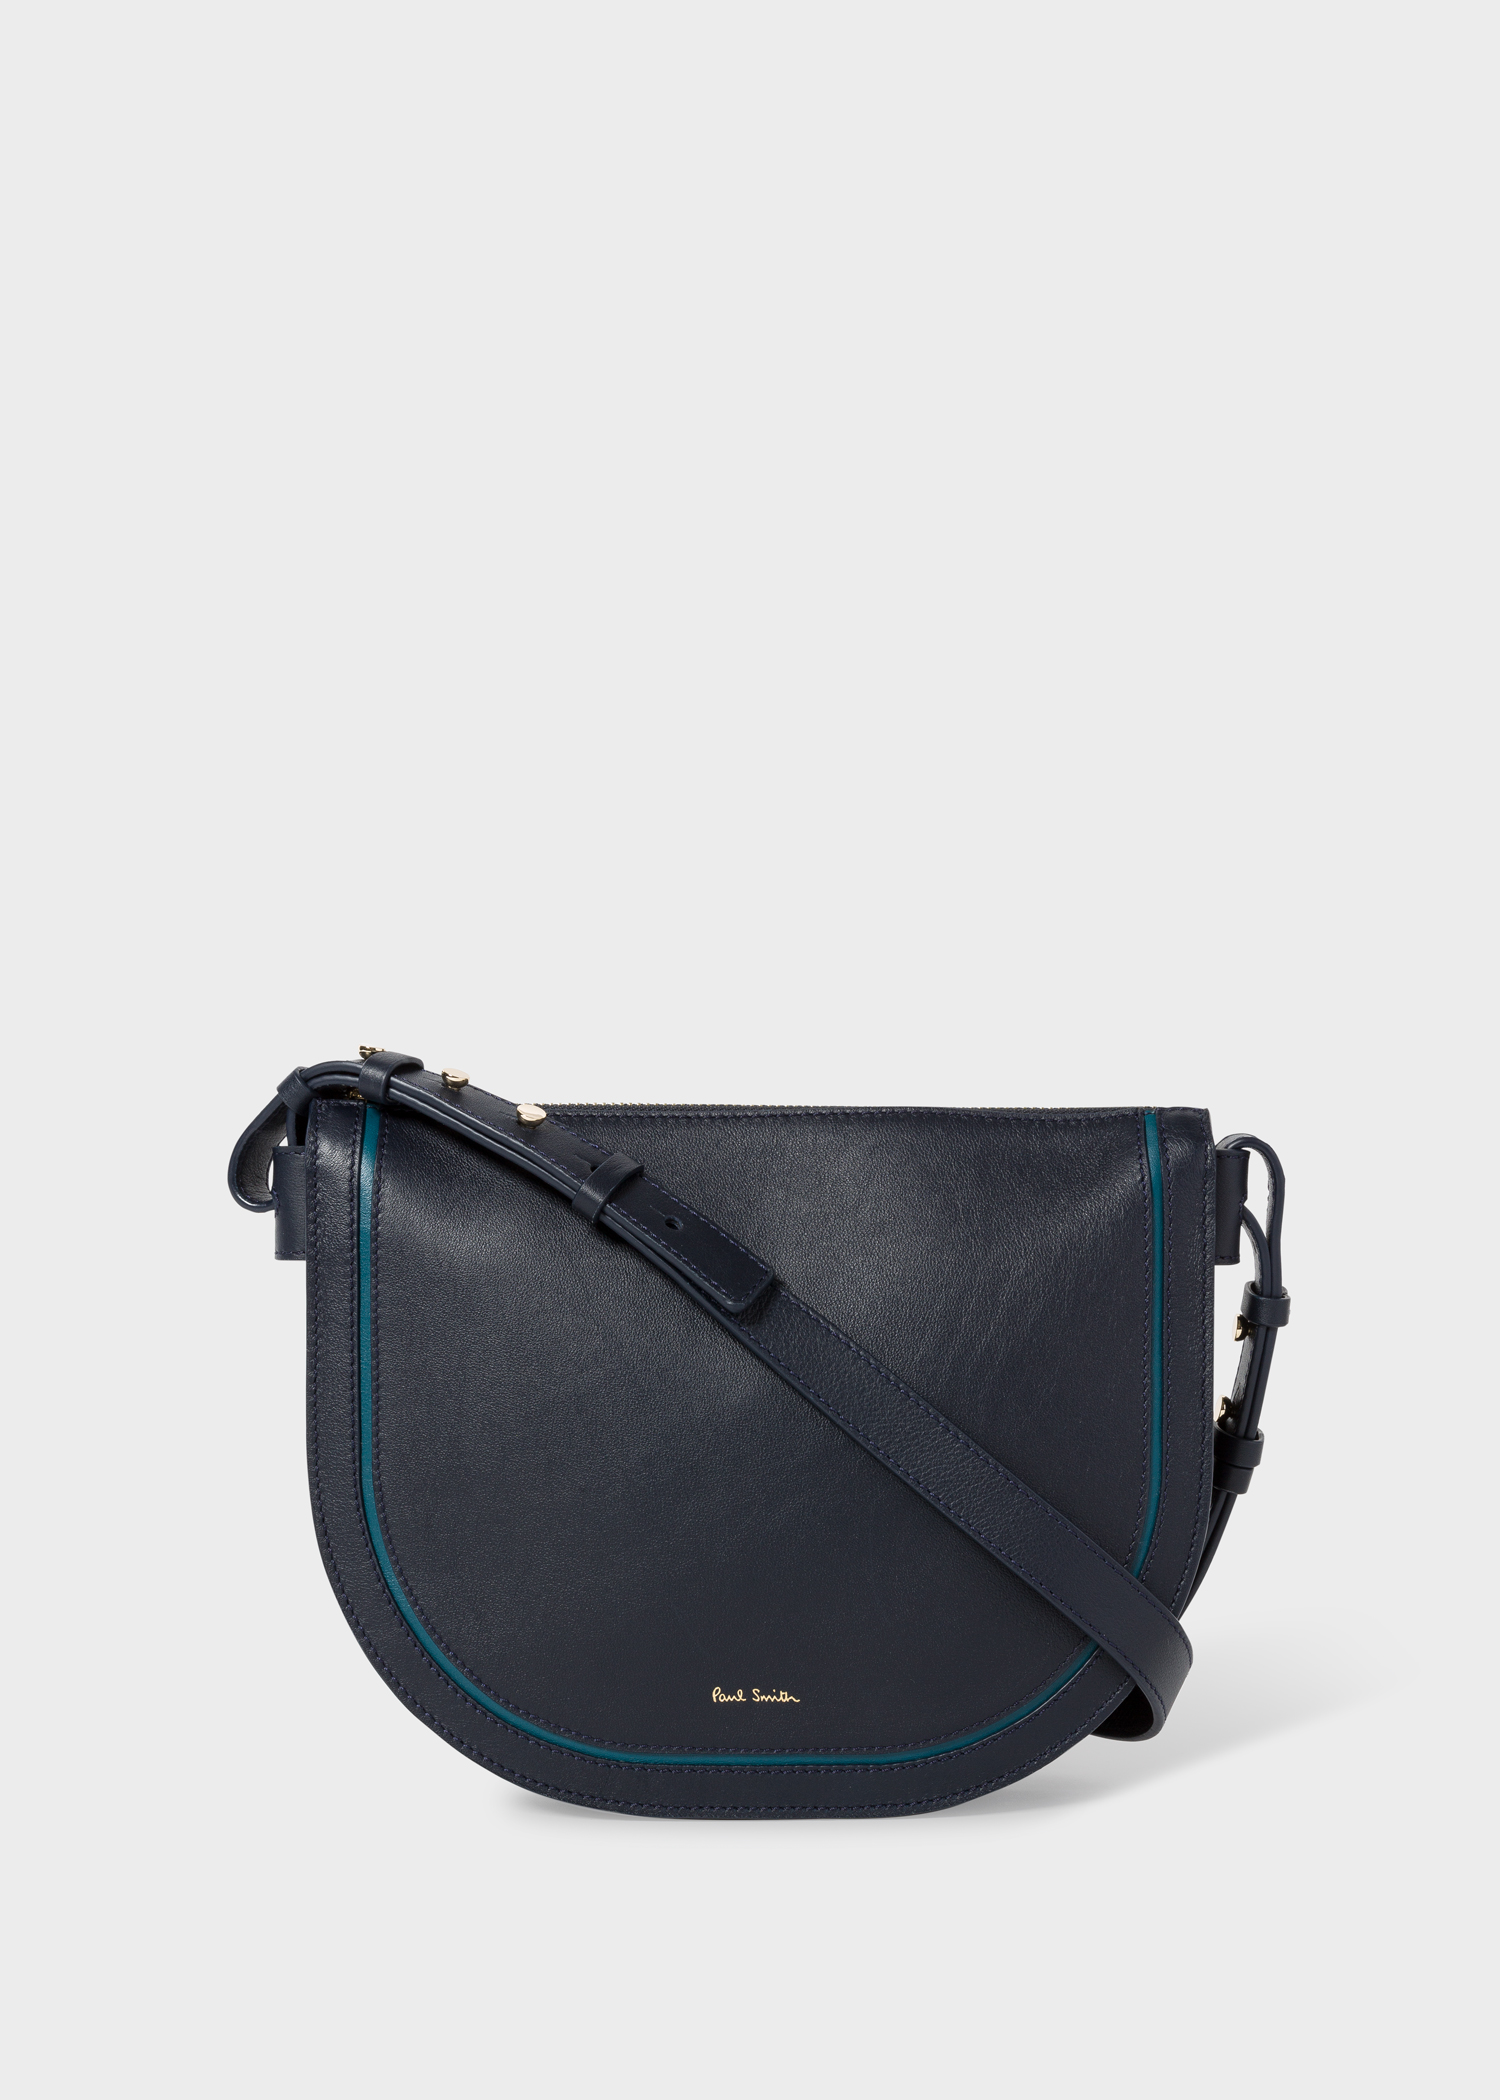 9c0946be8 Front view - Women's Navy 'Concertina' Leather Cross-Body Bag Paul Smith